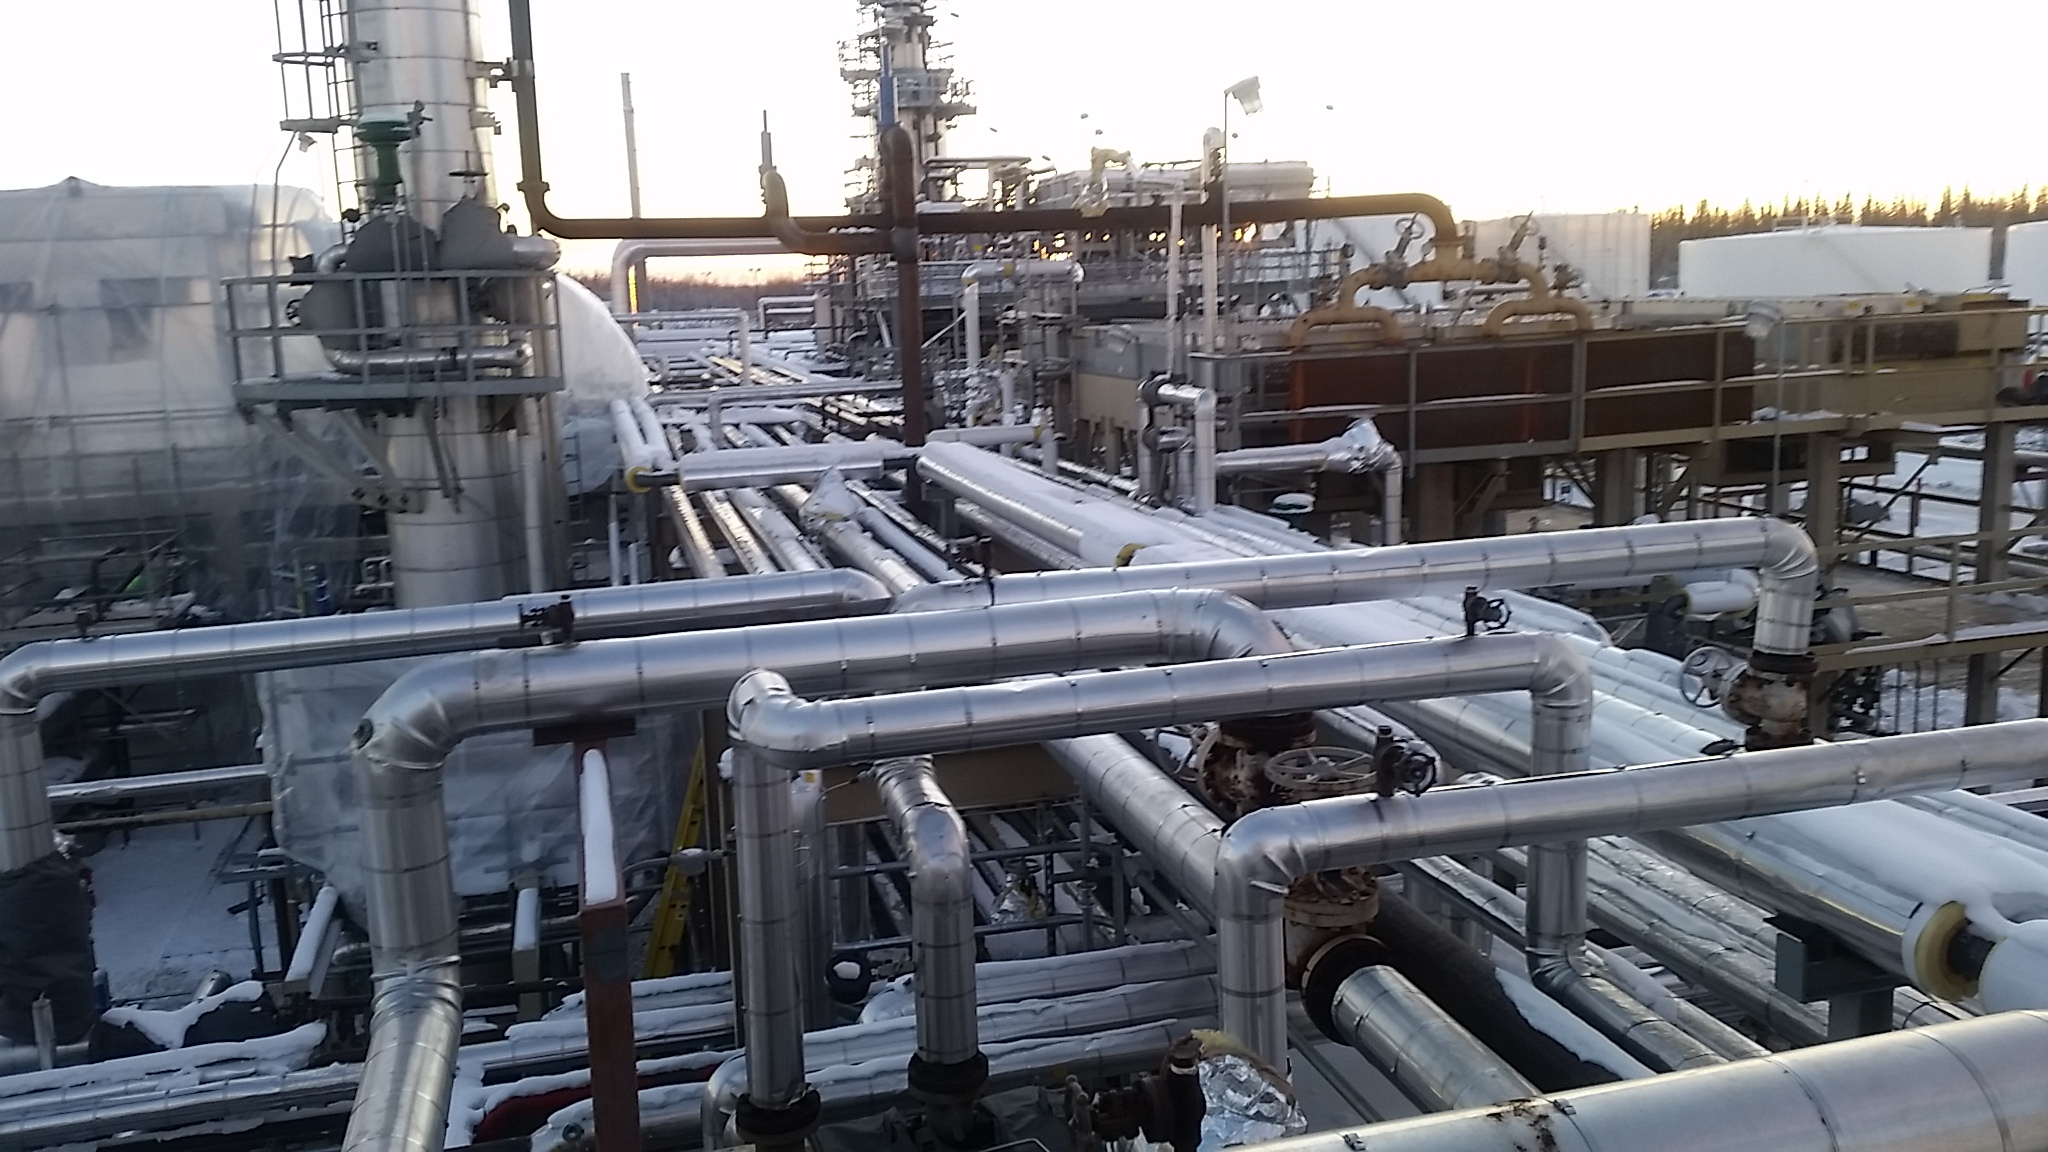 Piping Design Doyon Anvil Corp Layout And Pictures Our Services Include